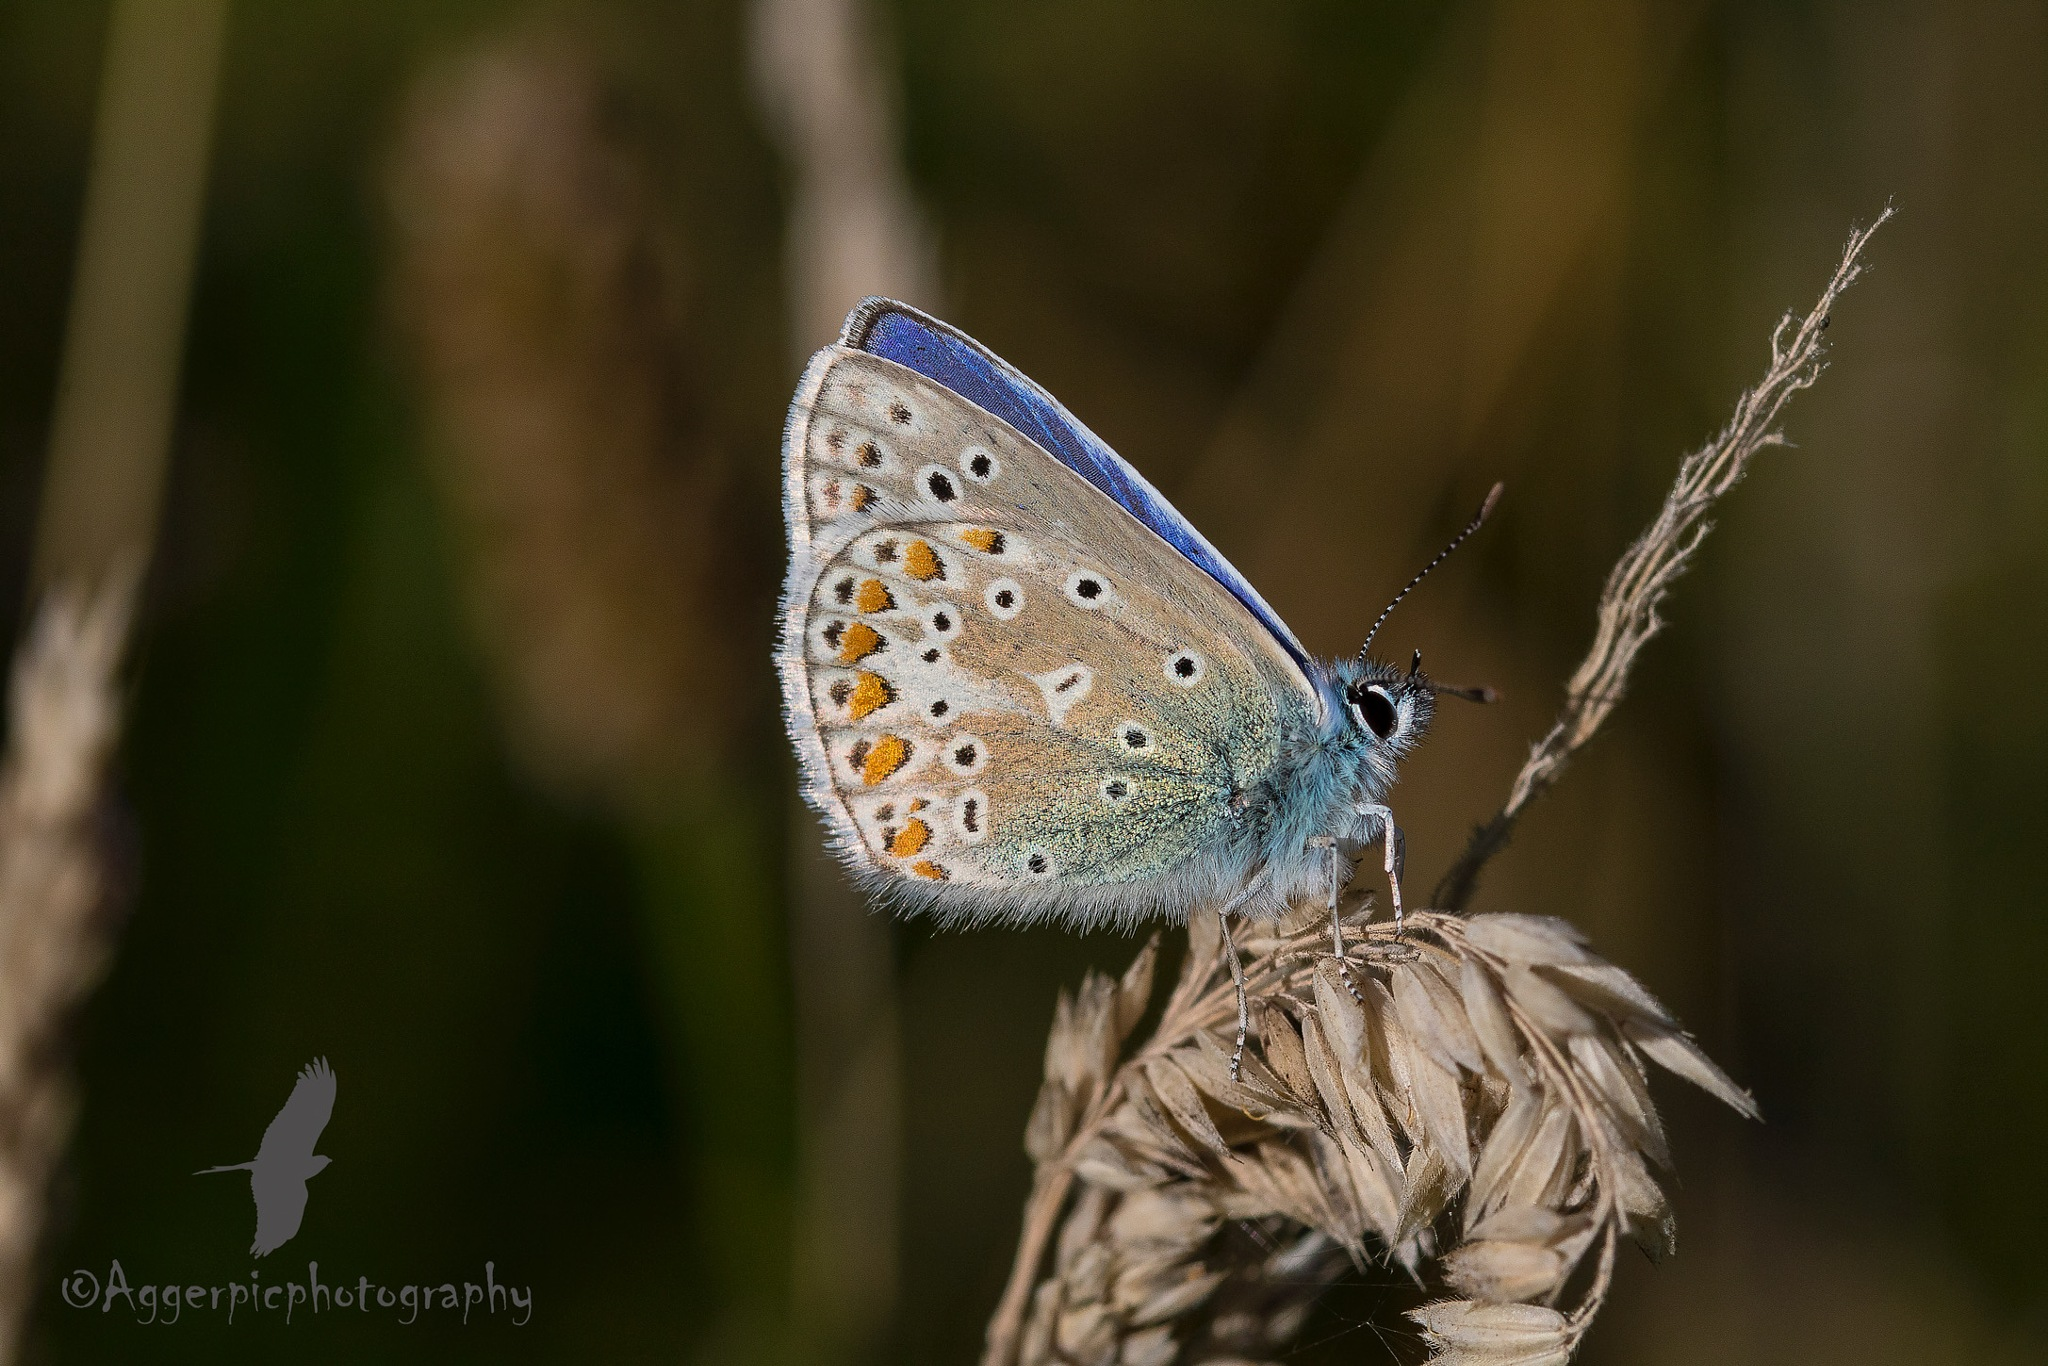 Common Blue Butterfly by Aggerpicphotography